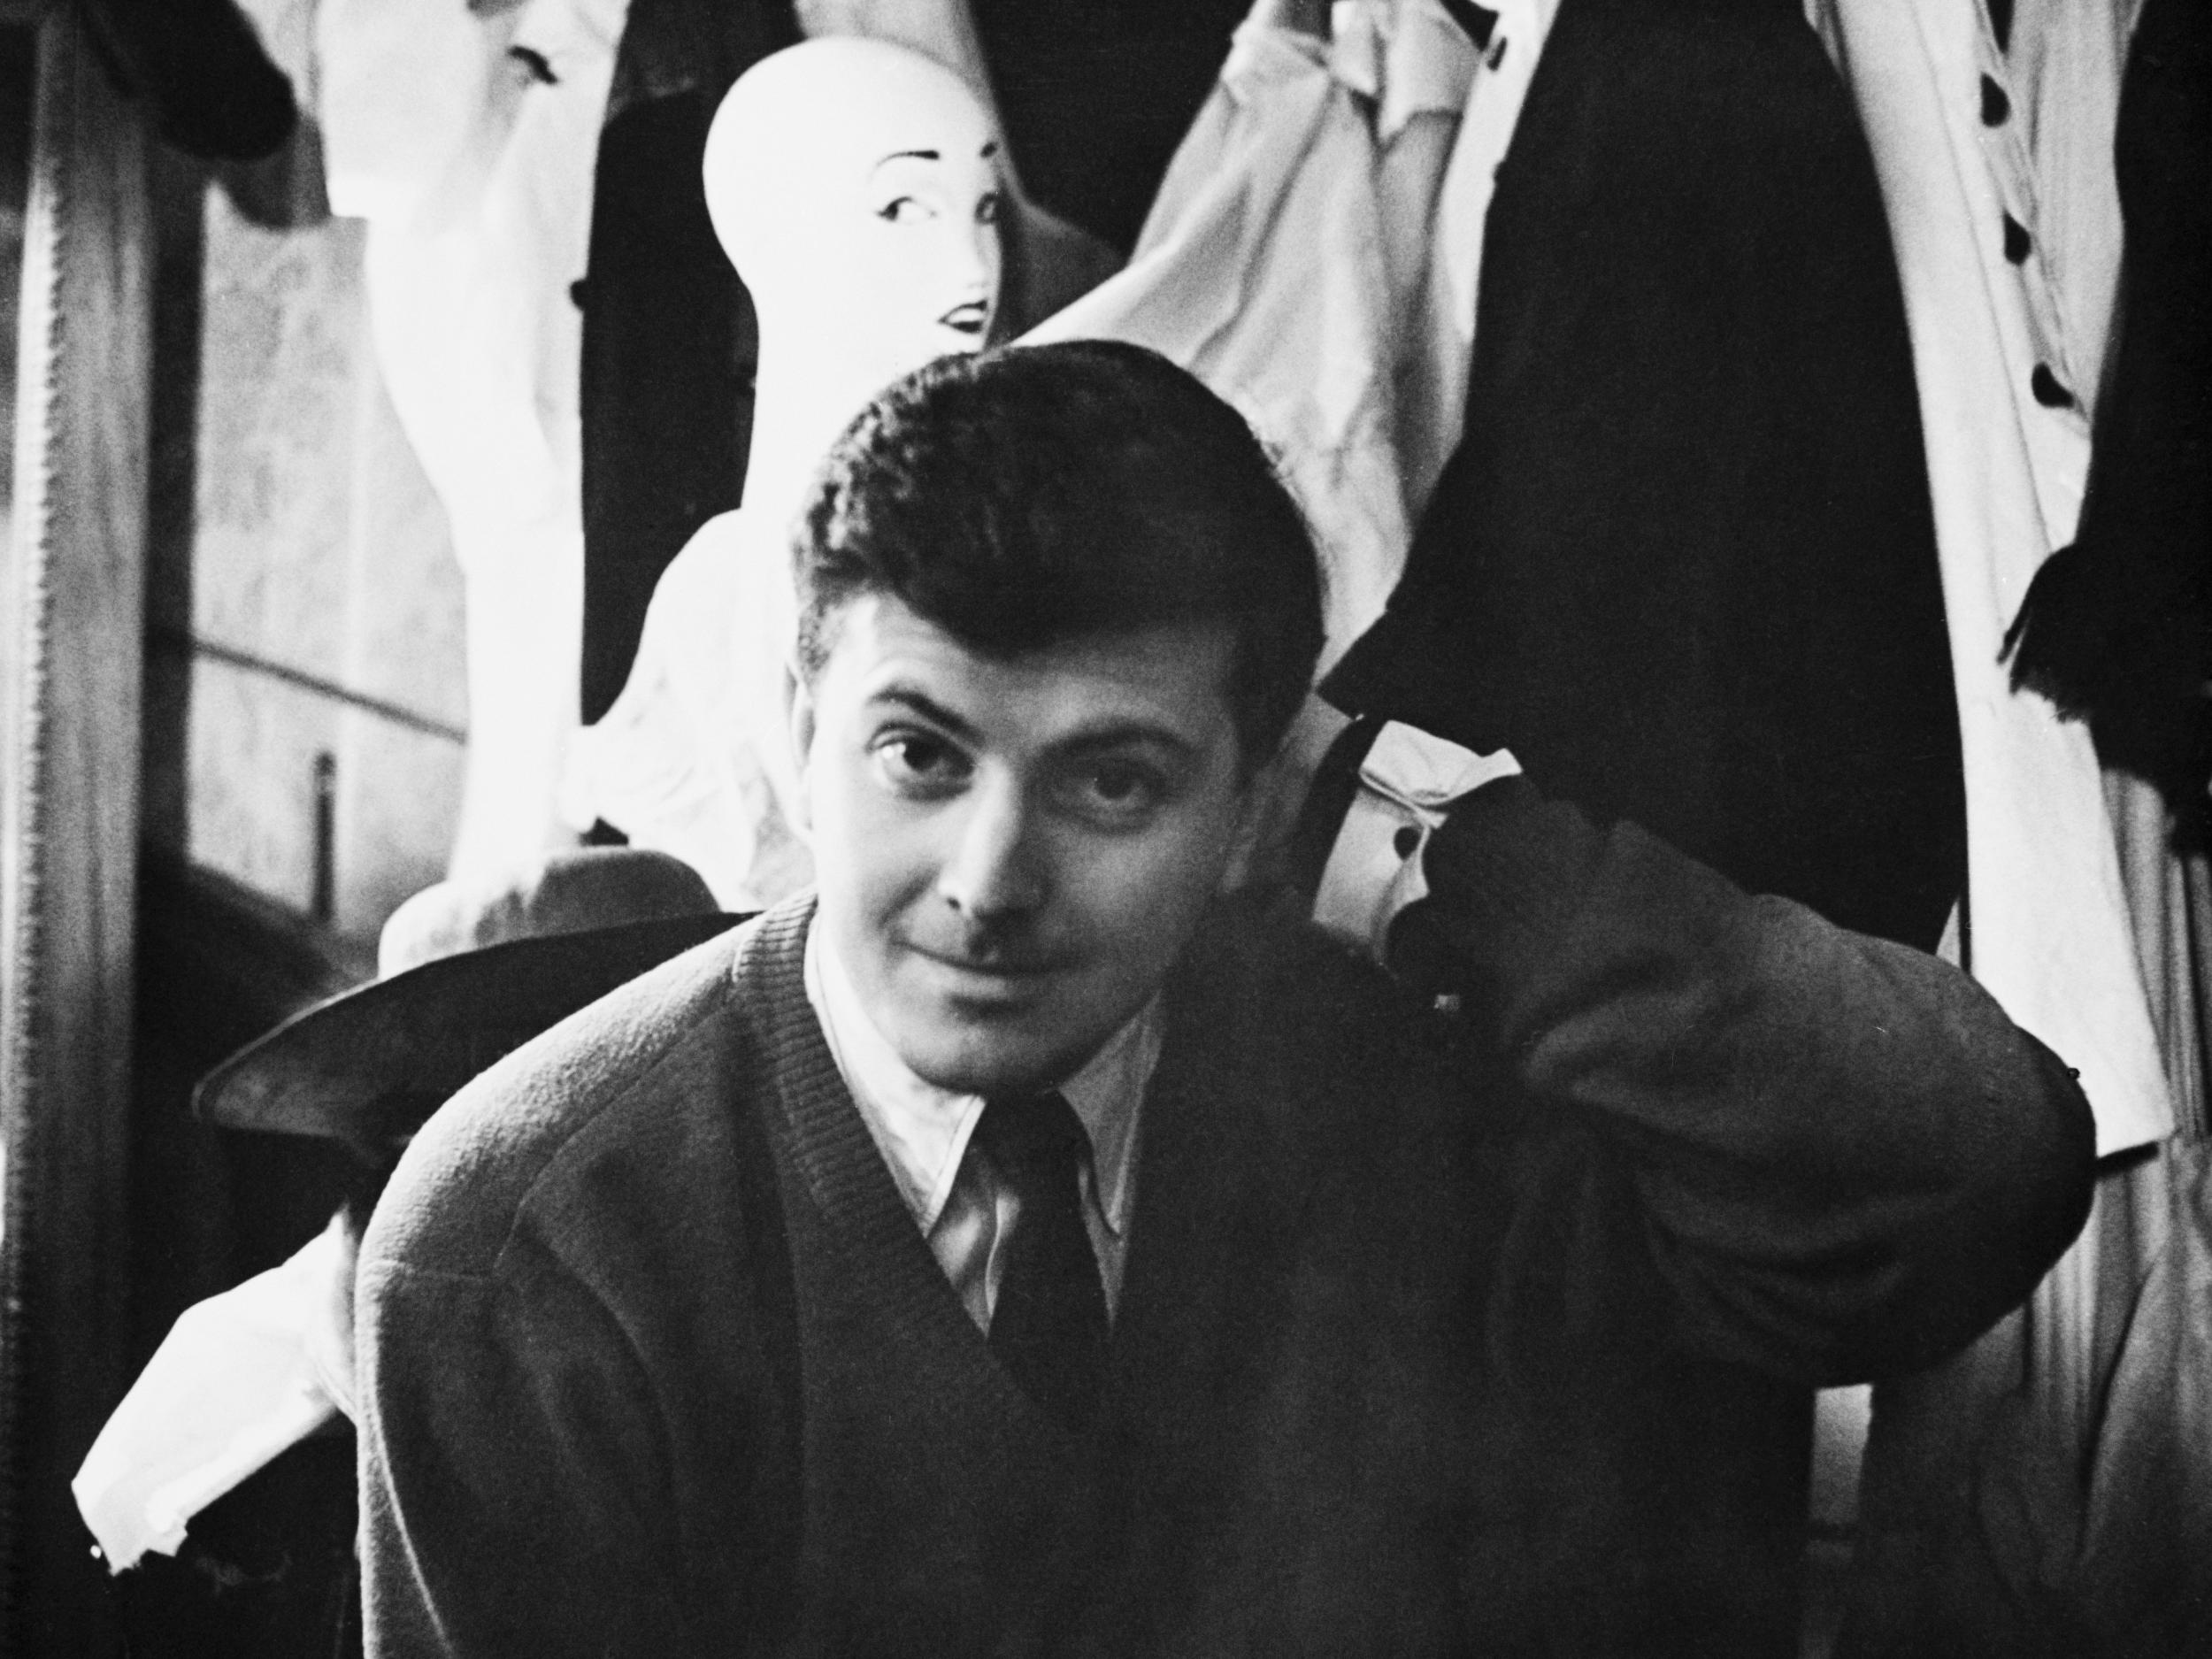 Hubert de Givenchy, French fashion designer: biography, personal life, career 34